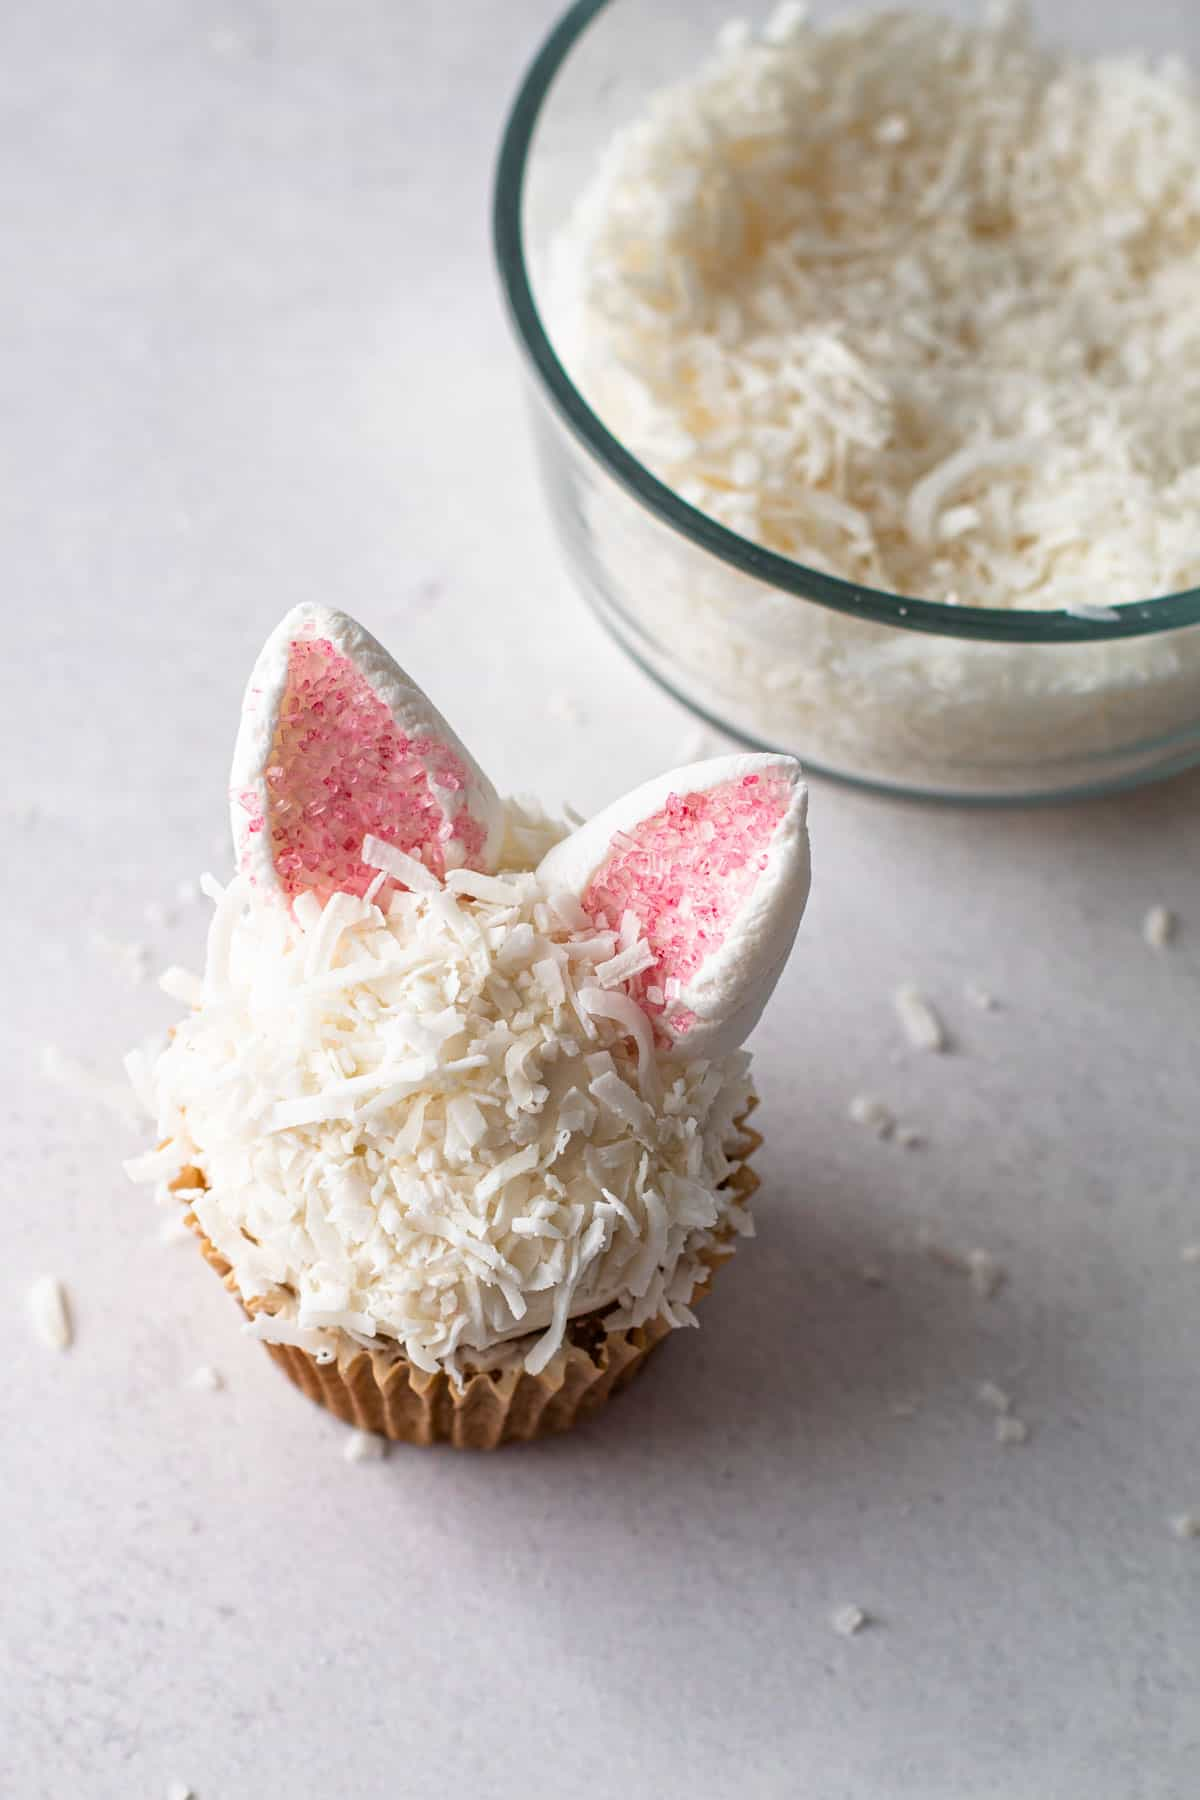 Bunny Cupcakes made from marshmallows and shredded coconut.